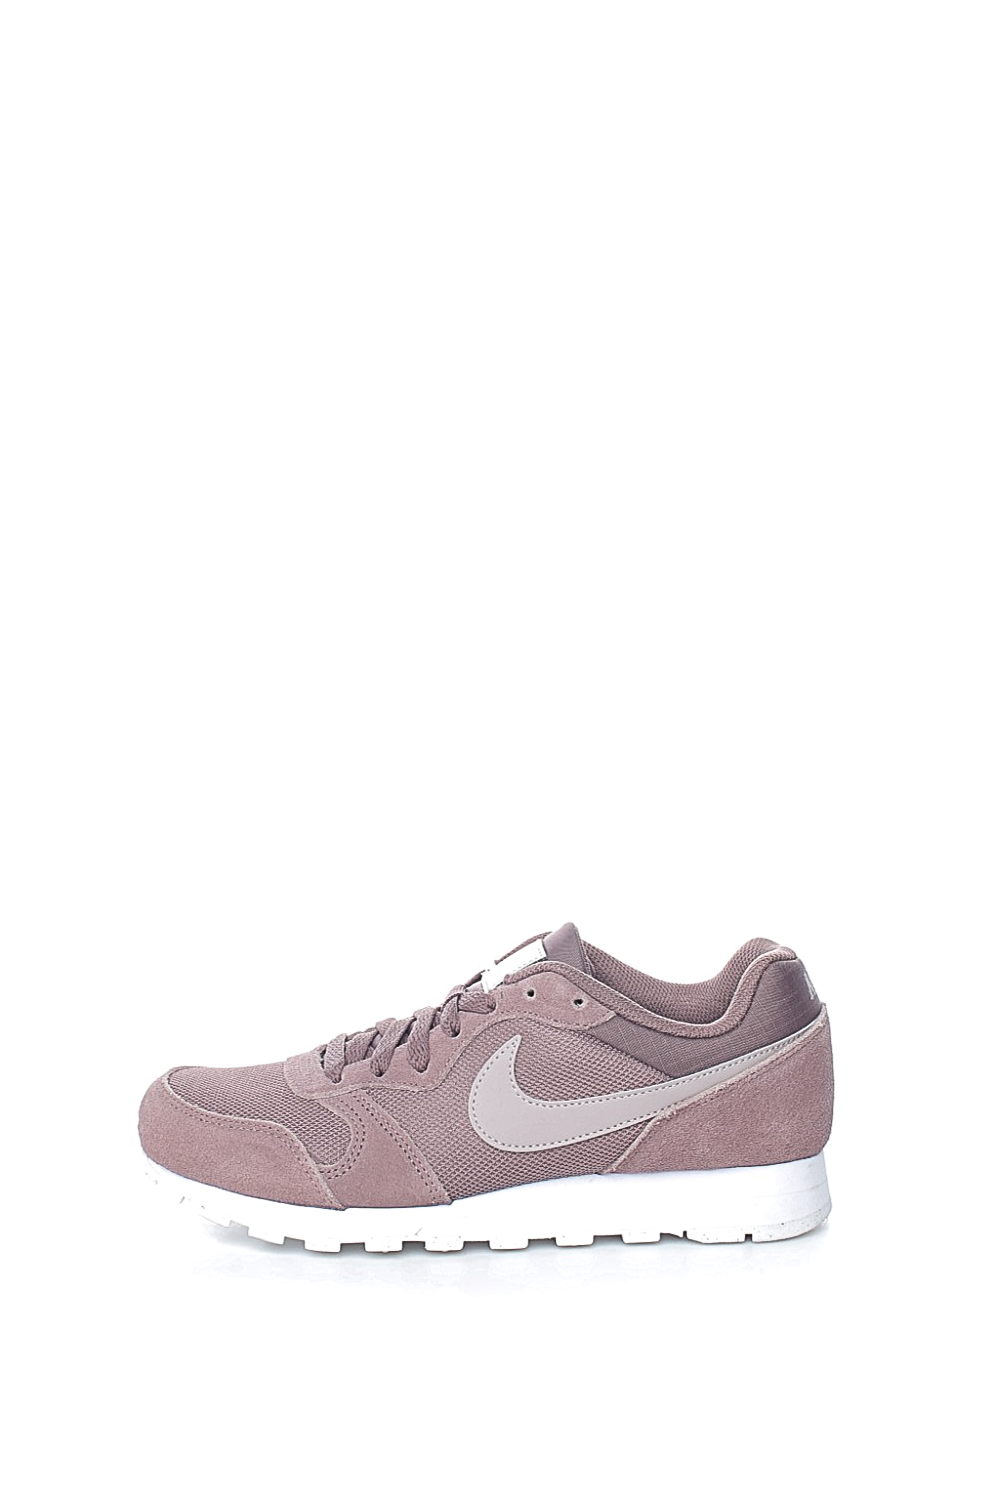 74ae9198cf0 Collective Online NIKE – Γυναικεία sneakers NIKE MD RUNNER 2 μοβ